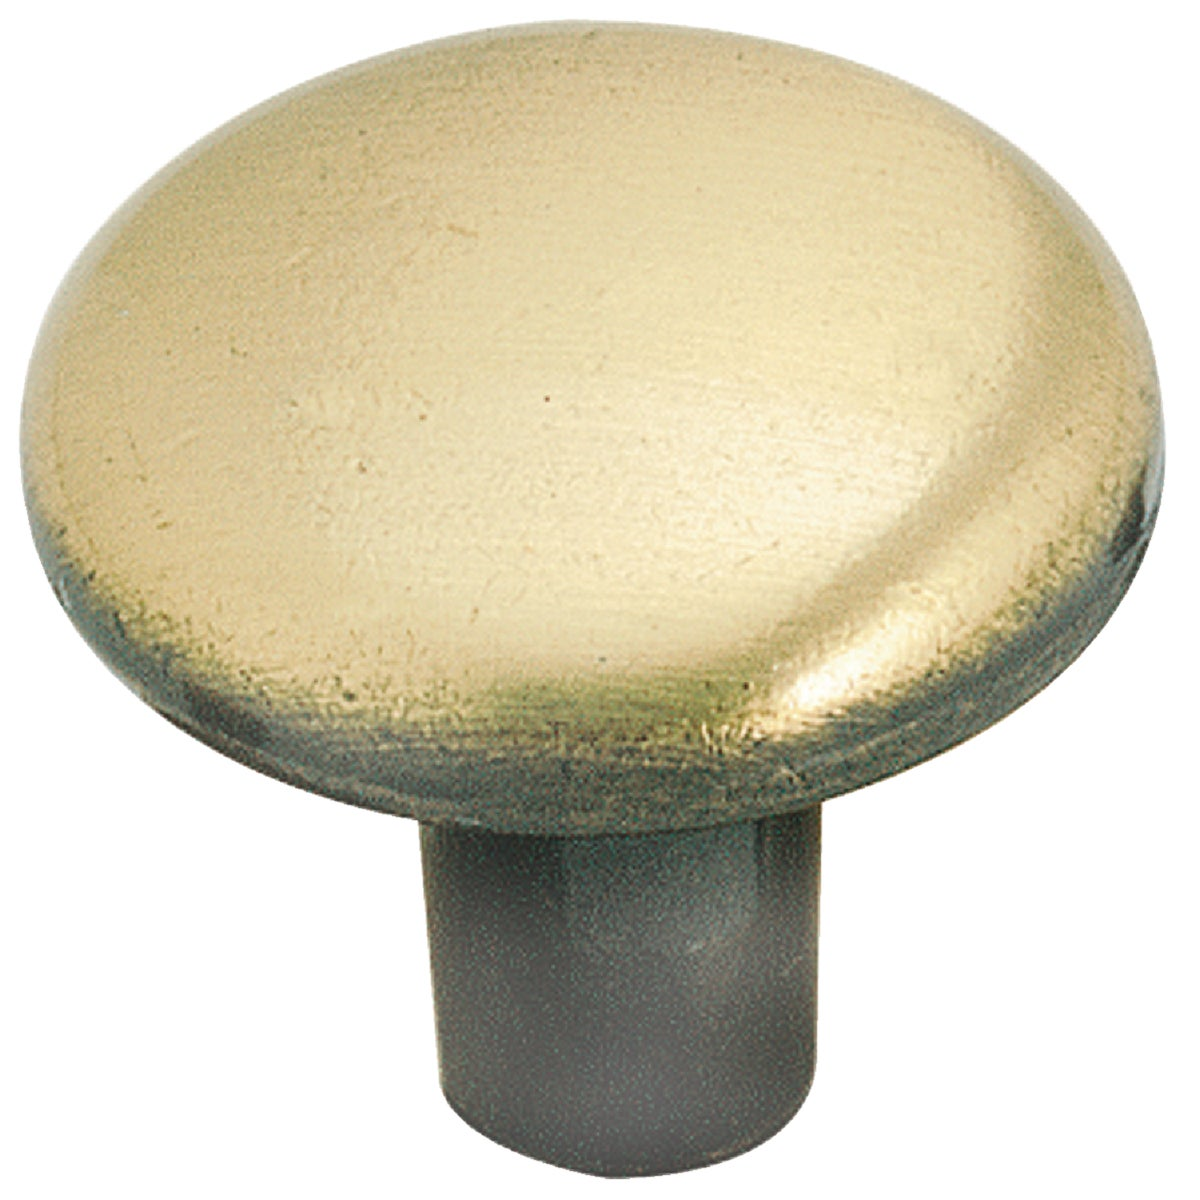 "1-1/16"" AE KNOB - BP3467-AE by Amerock Corporation"